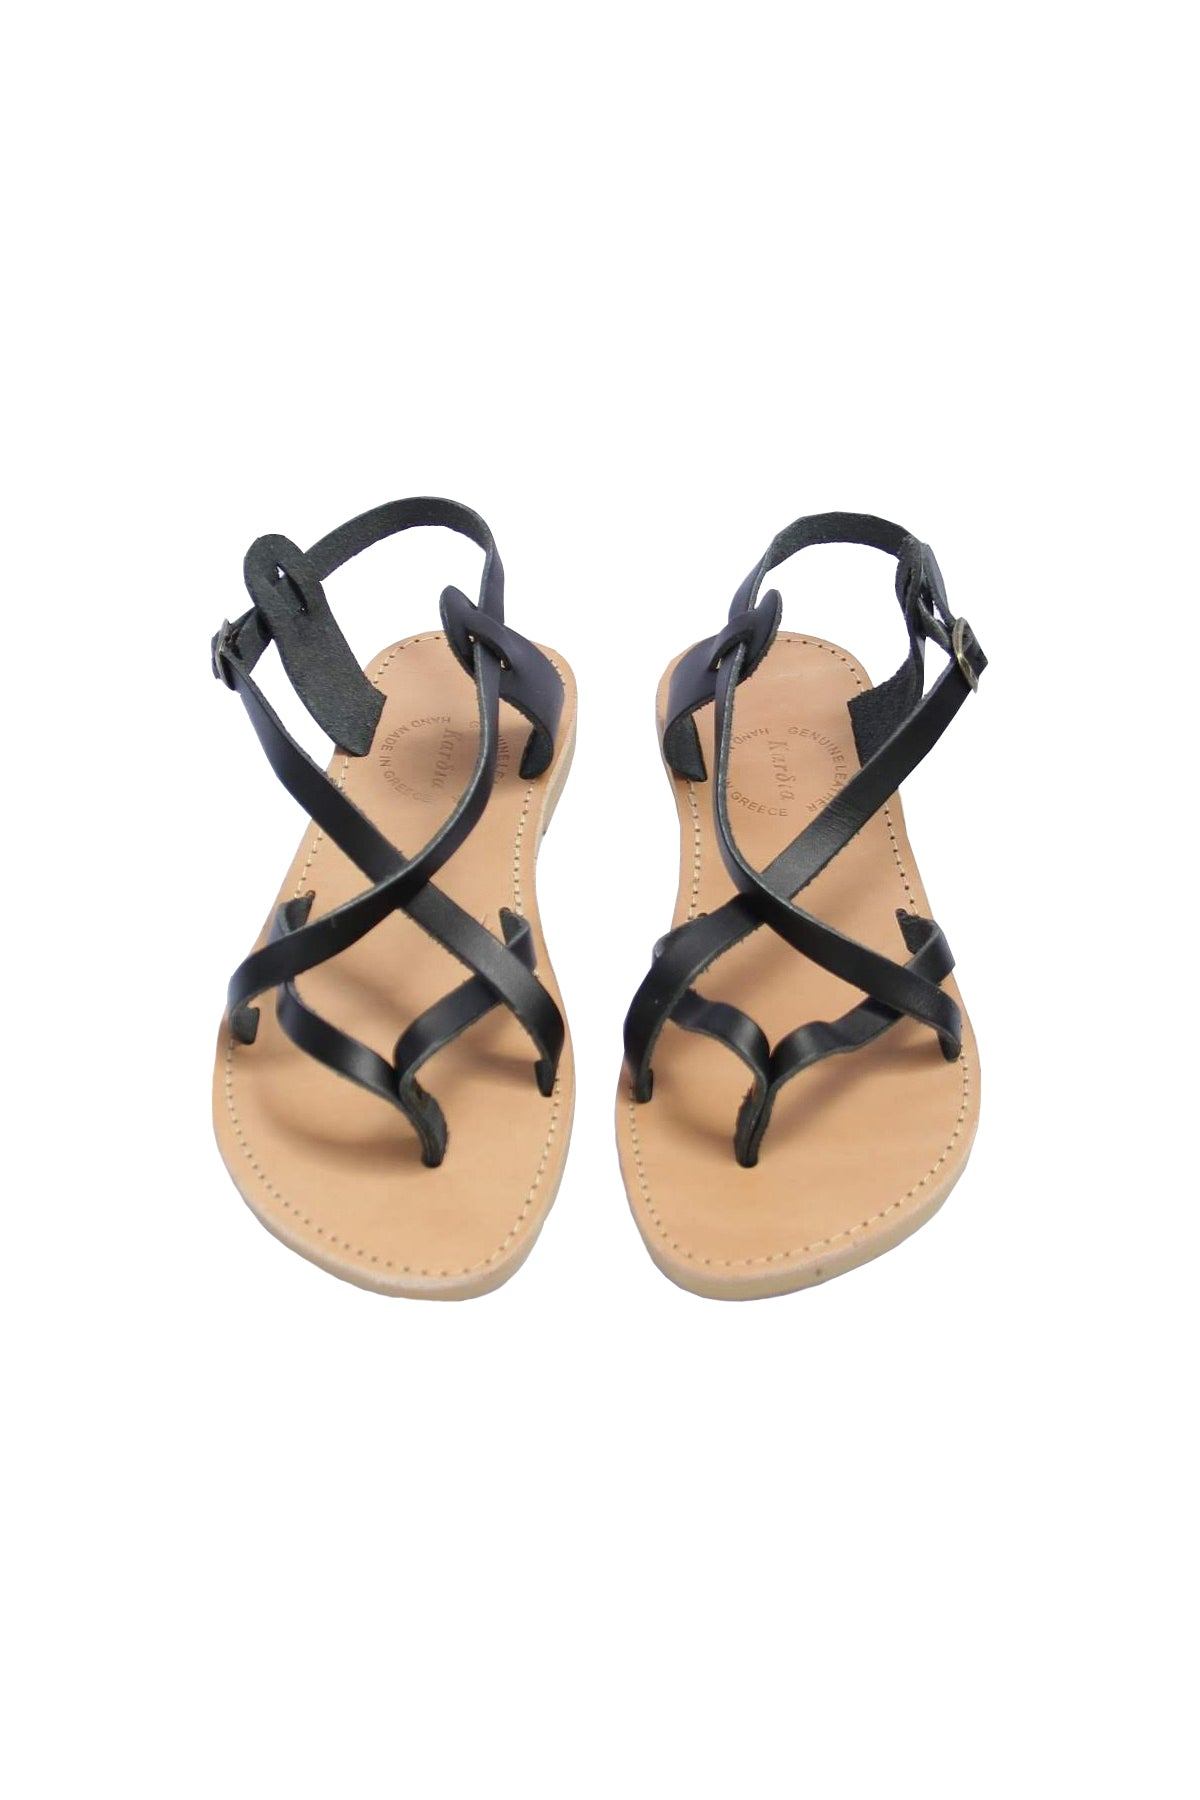 Athena Womens Sandals in Black Leather - Kardia